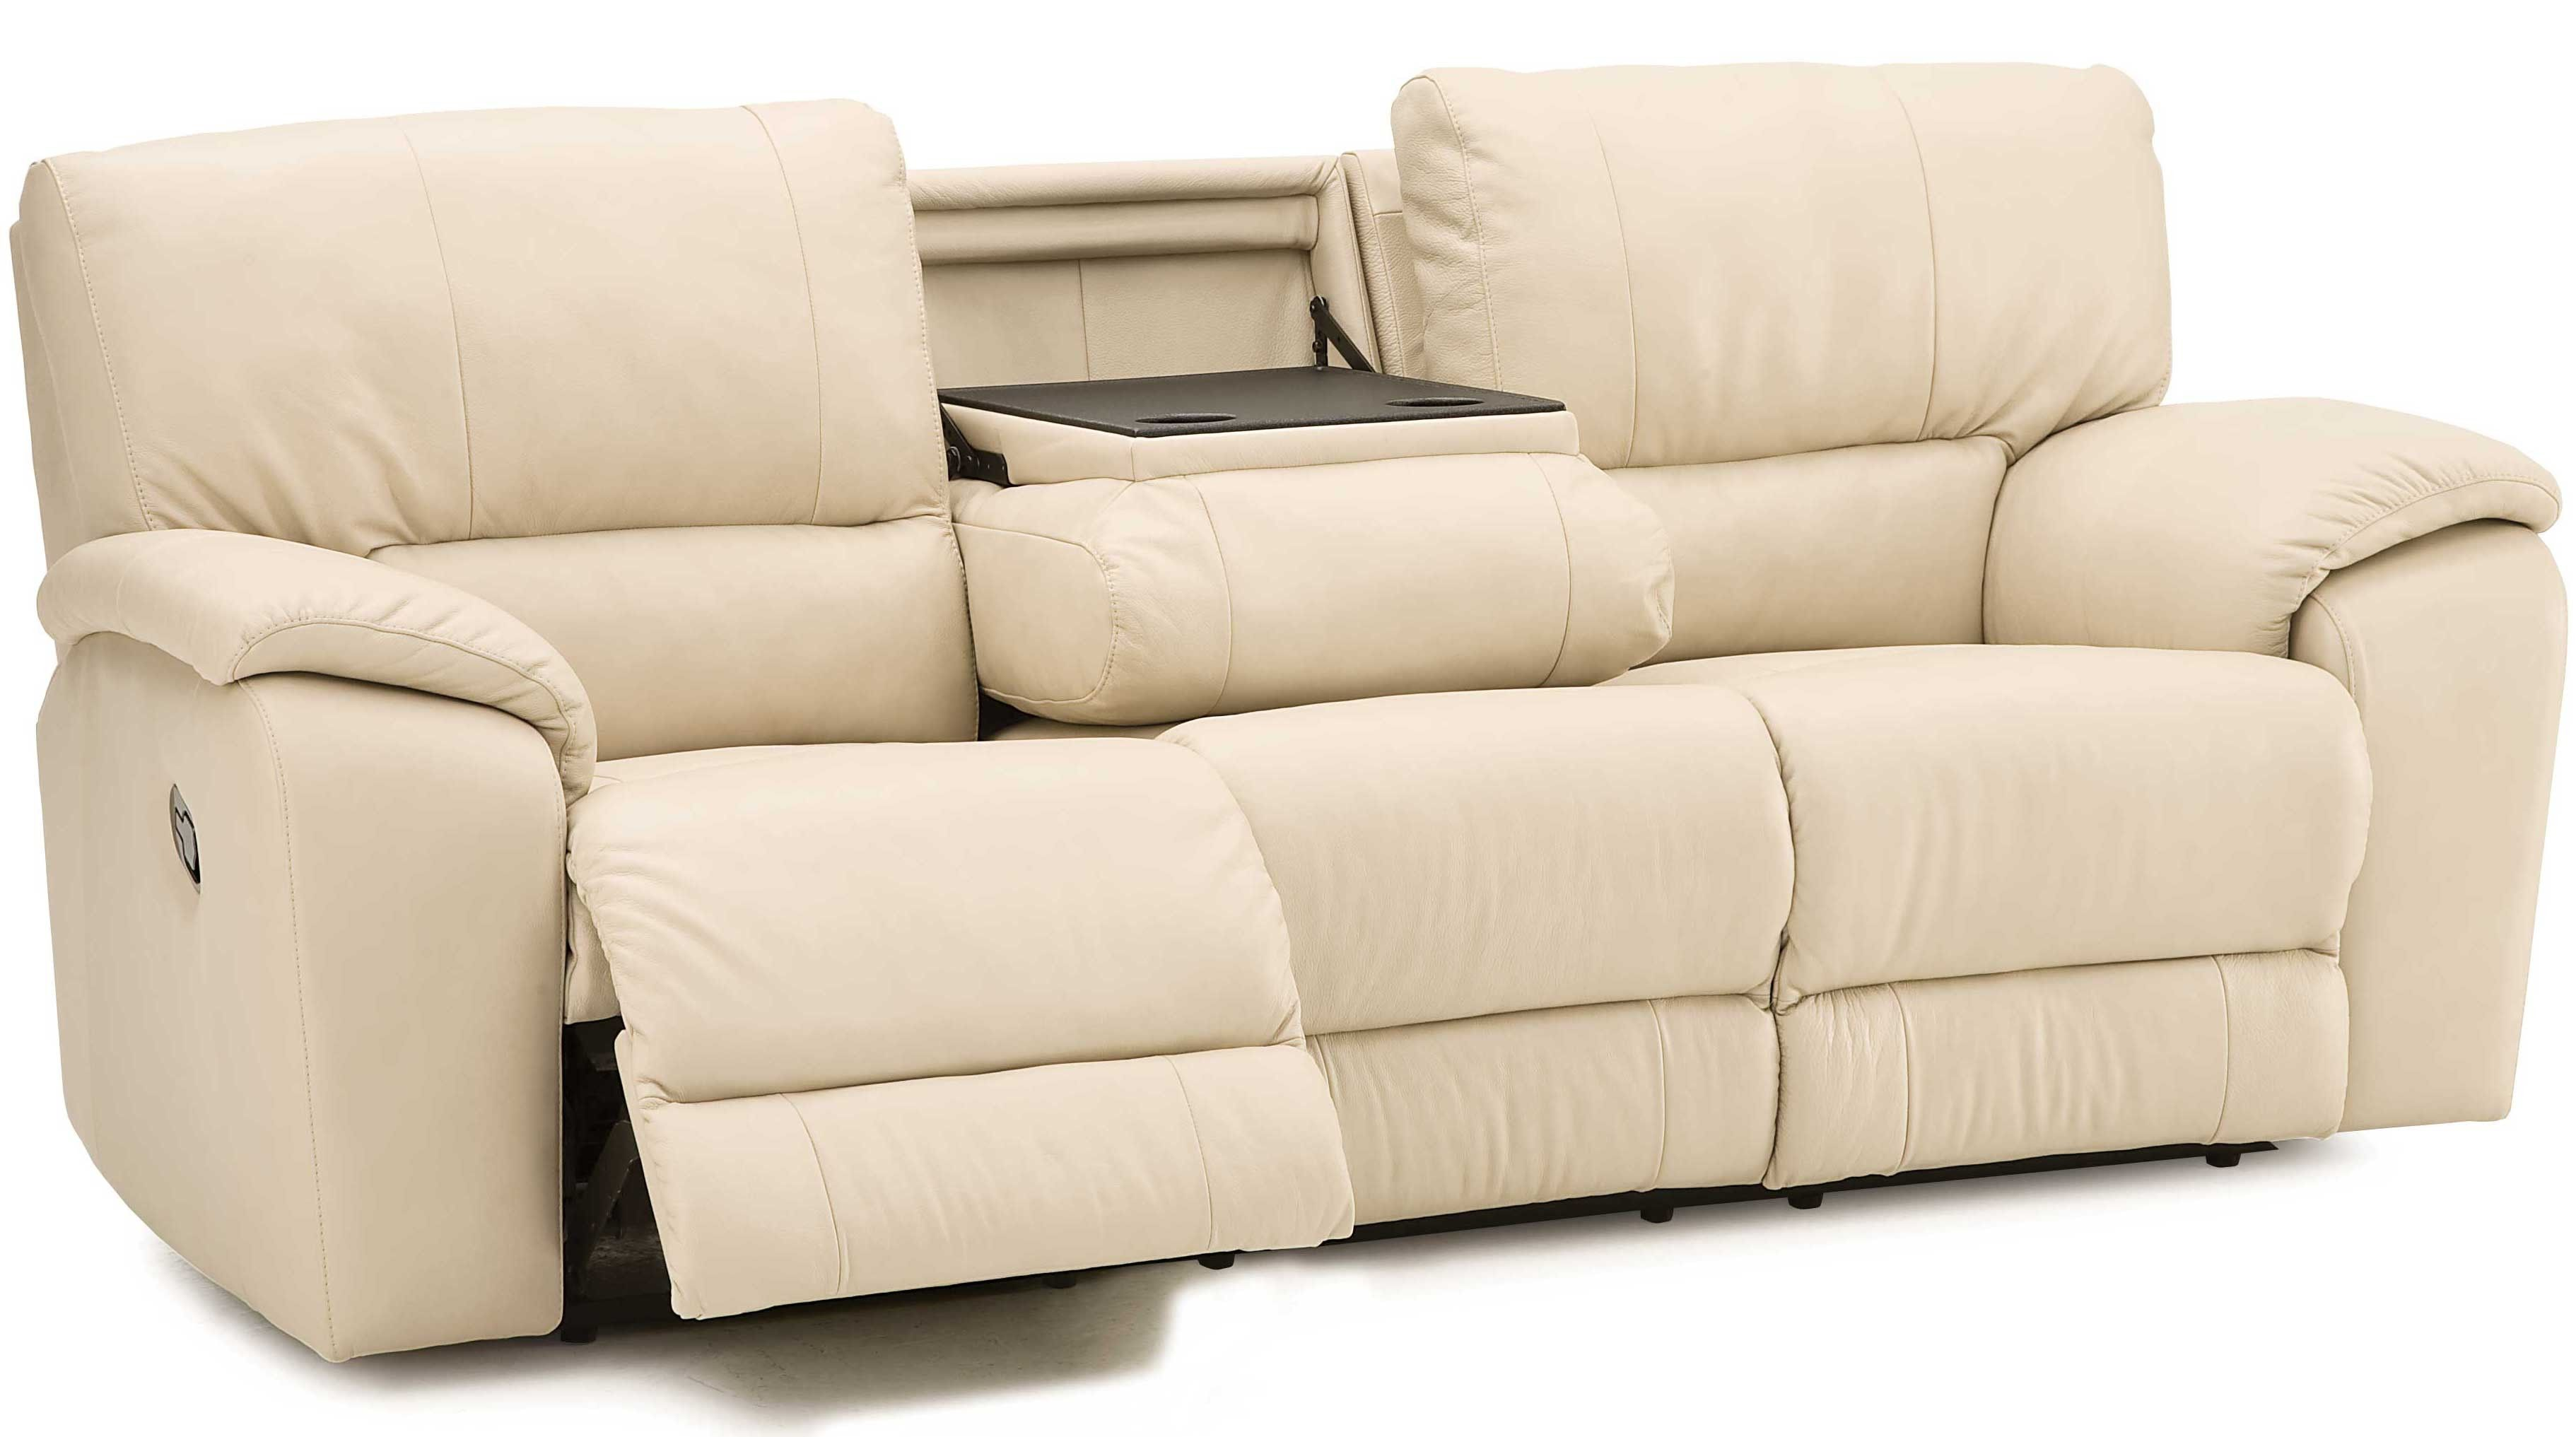 Unusual Sofas To Buy Click Image Above To Buy Palliser Shields Sofa Recliner